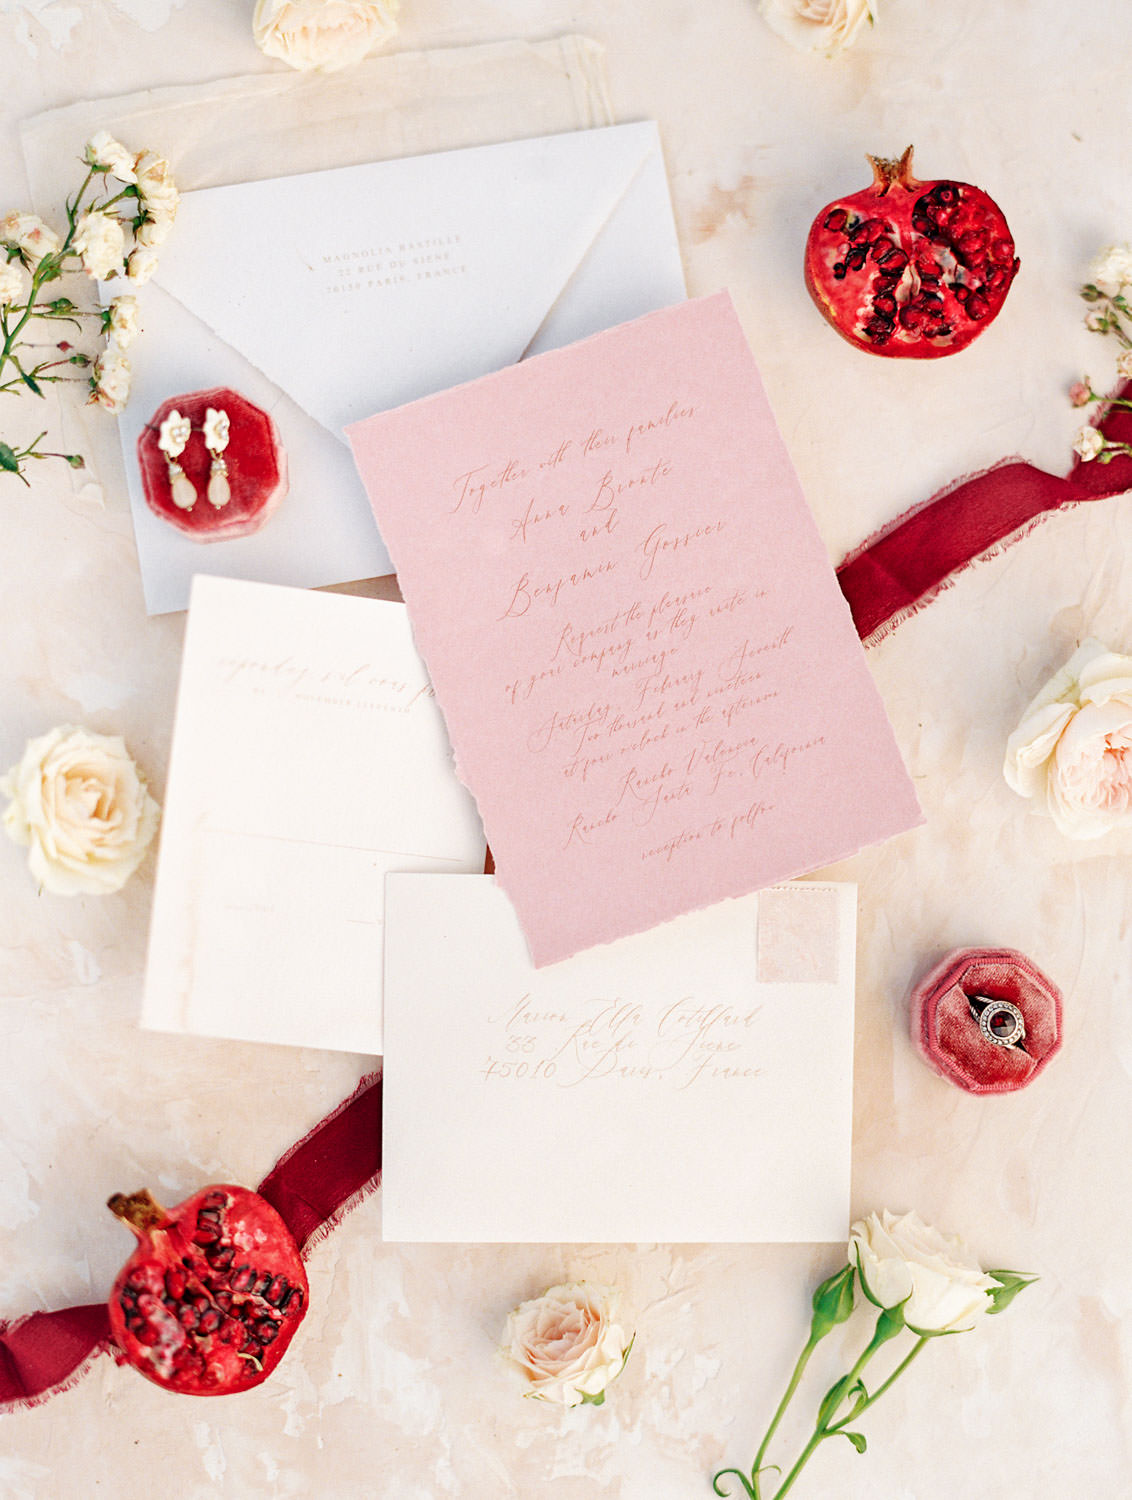 Berry Toned wedding stationery invitations with pink paper and hand torn edges with calligraphy, Pampas Grass Wedding in San Diego on Film by Cavin Elizabeth Photography